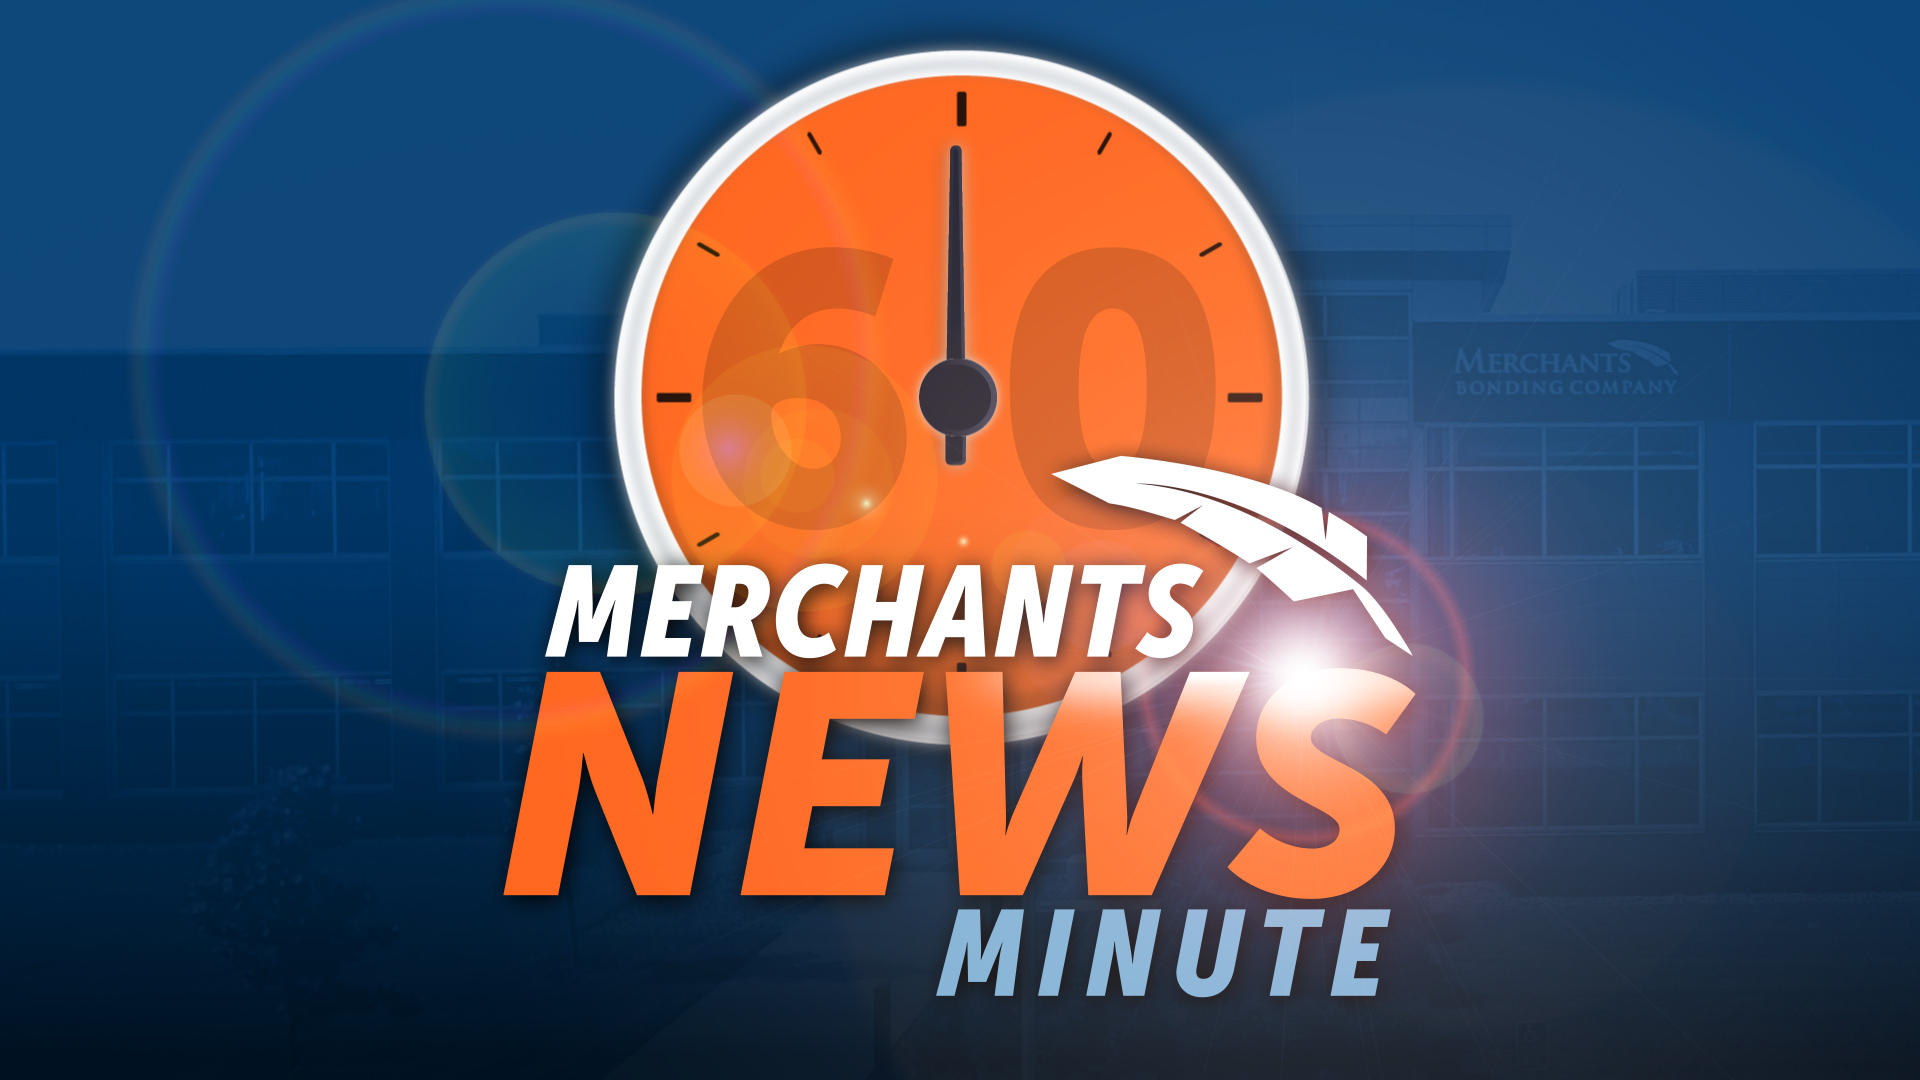 Merchants April News Minute